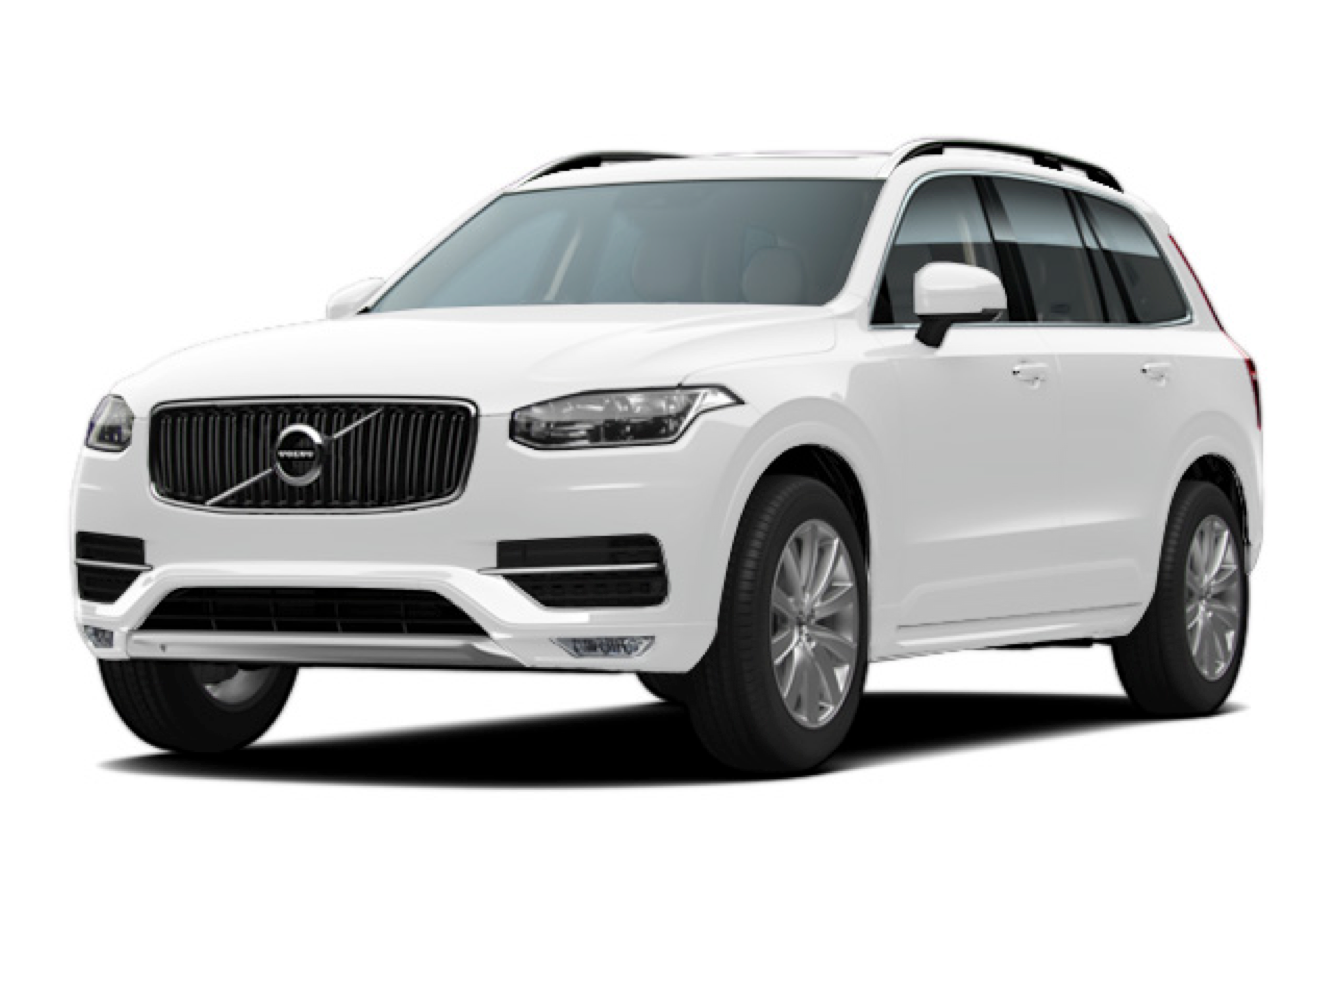 suv the ever fatalities volvo and express suvs best in auto a uk no recorded